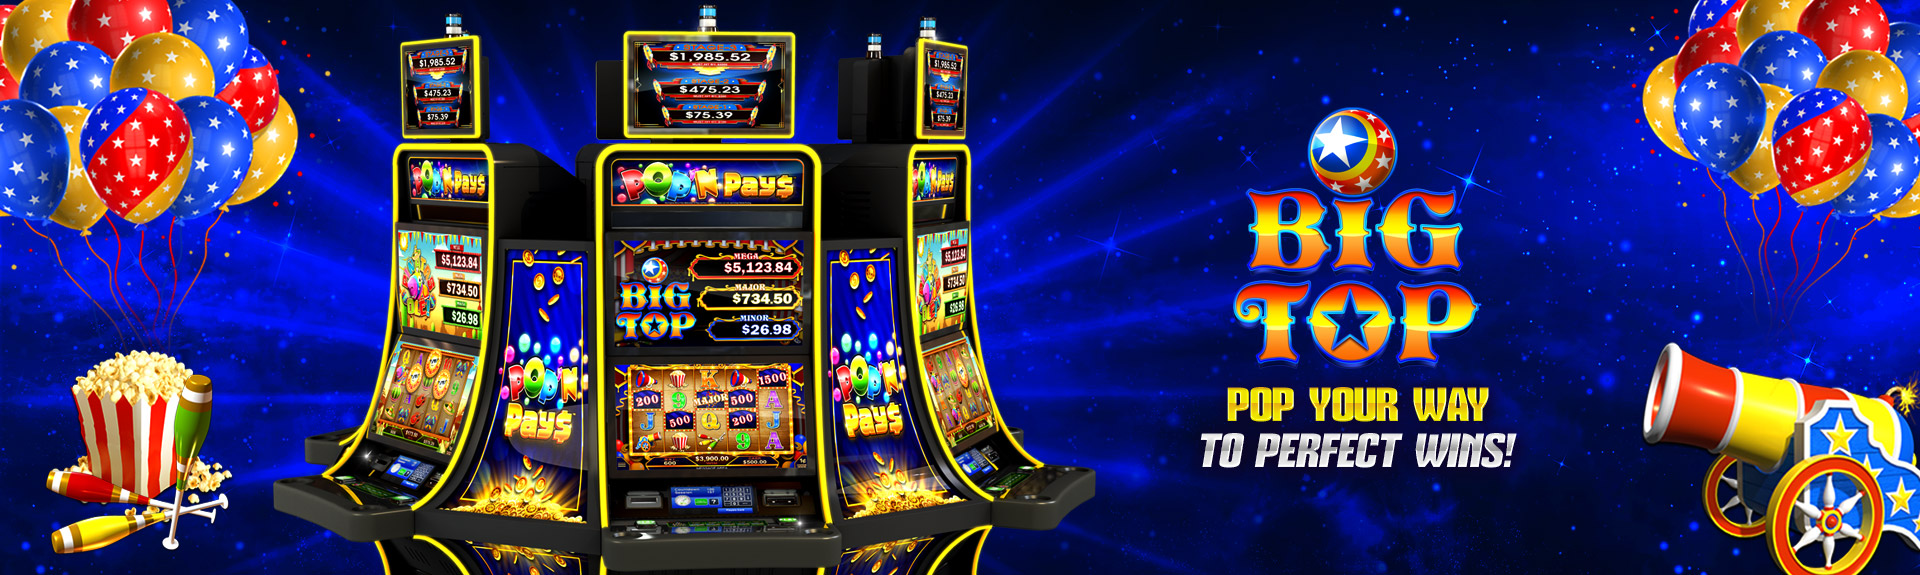 Gaming Arts A World Leader In Bingo And Keno Games And Technology